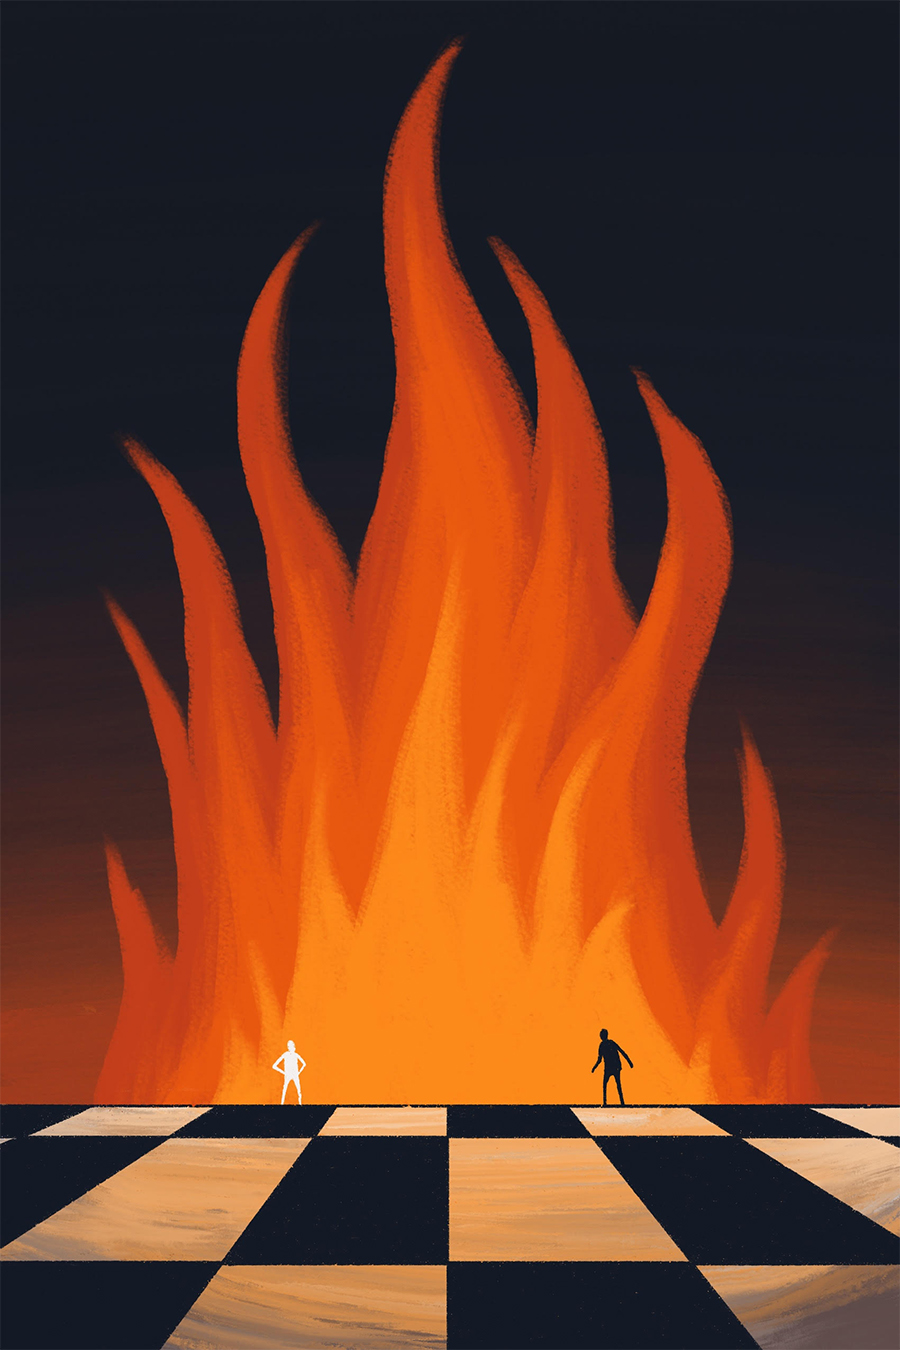 leeds illustration illustrator andy carter two people facing off on chessboard passionate fire